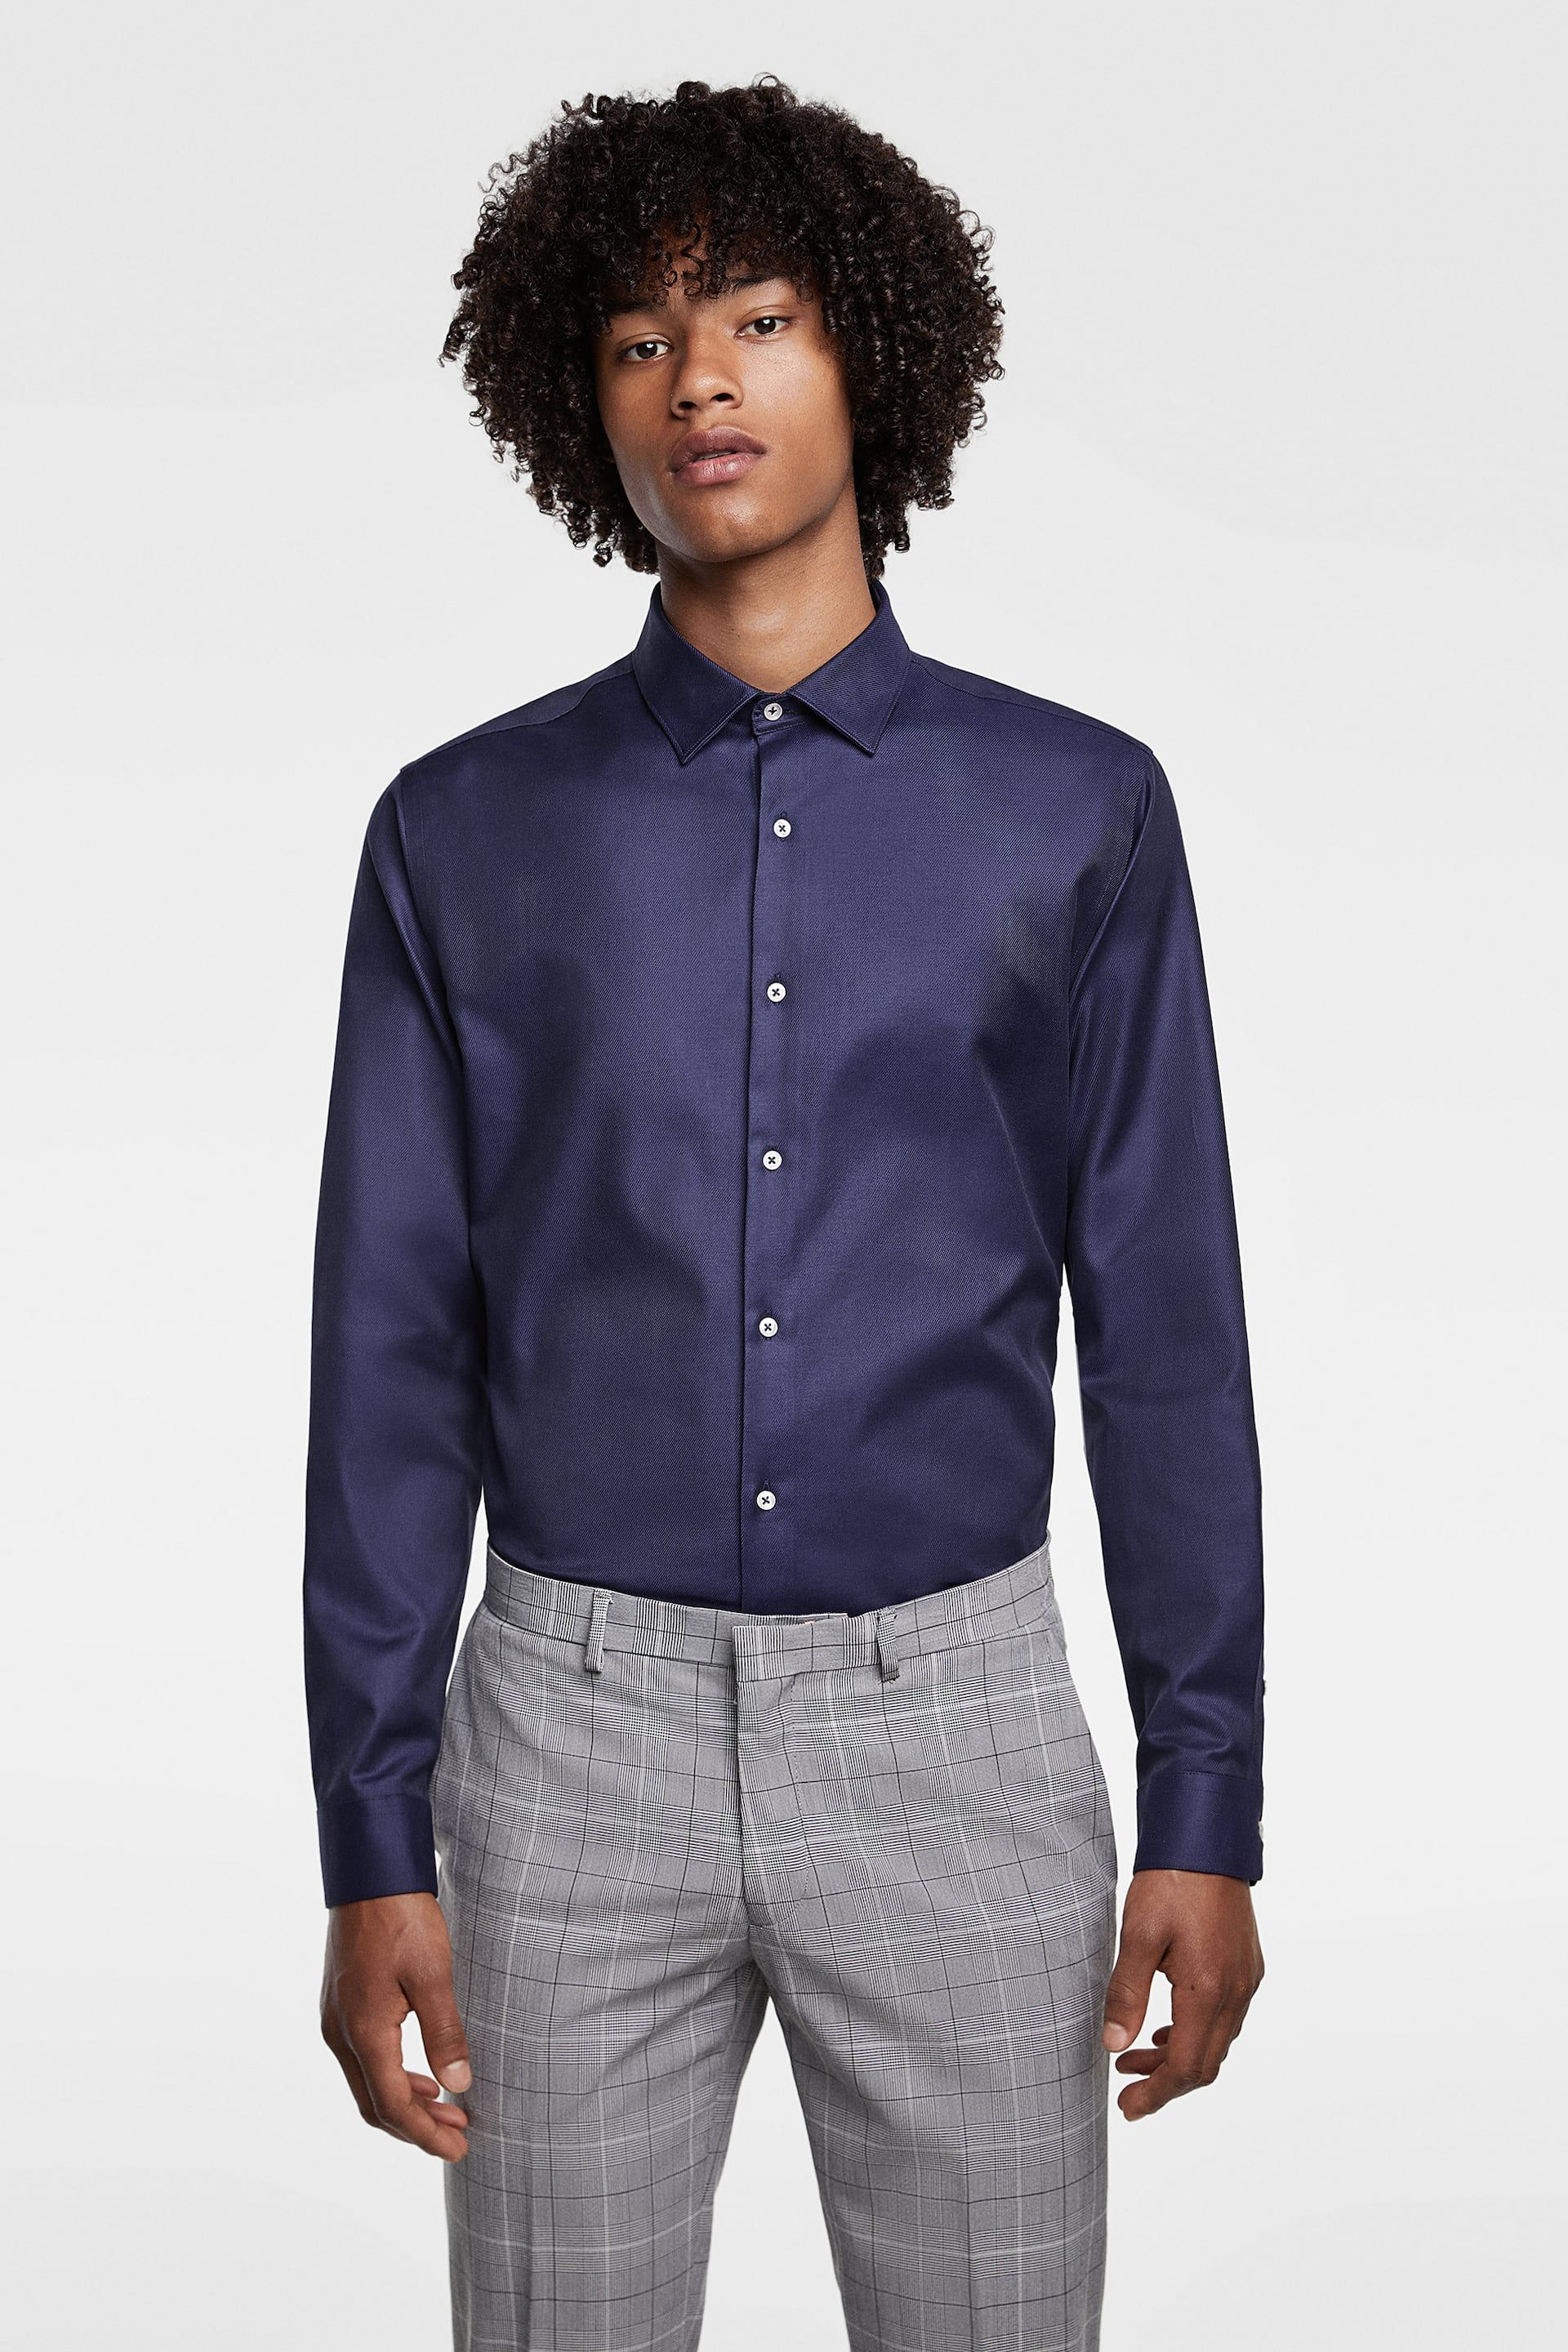 436575b2b8cf PREMIUM TEXTURED WEAVE SHIRT - Item available in more colors ...